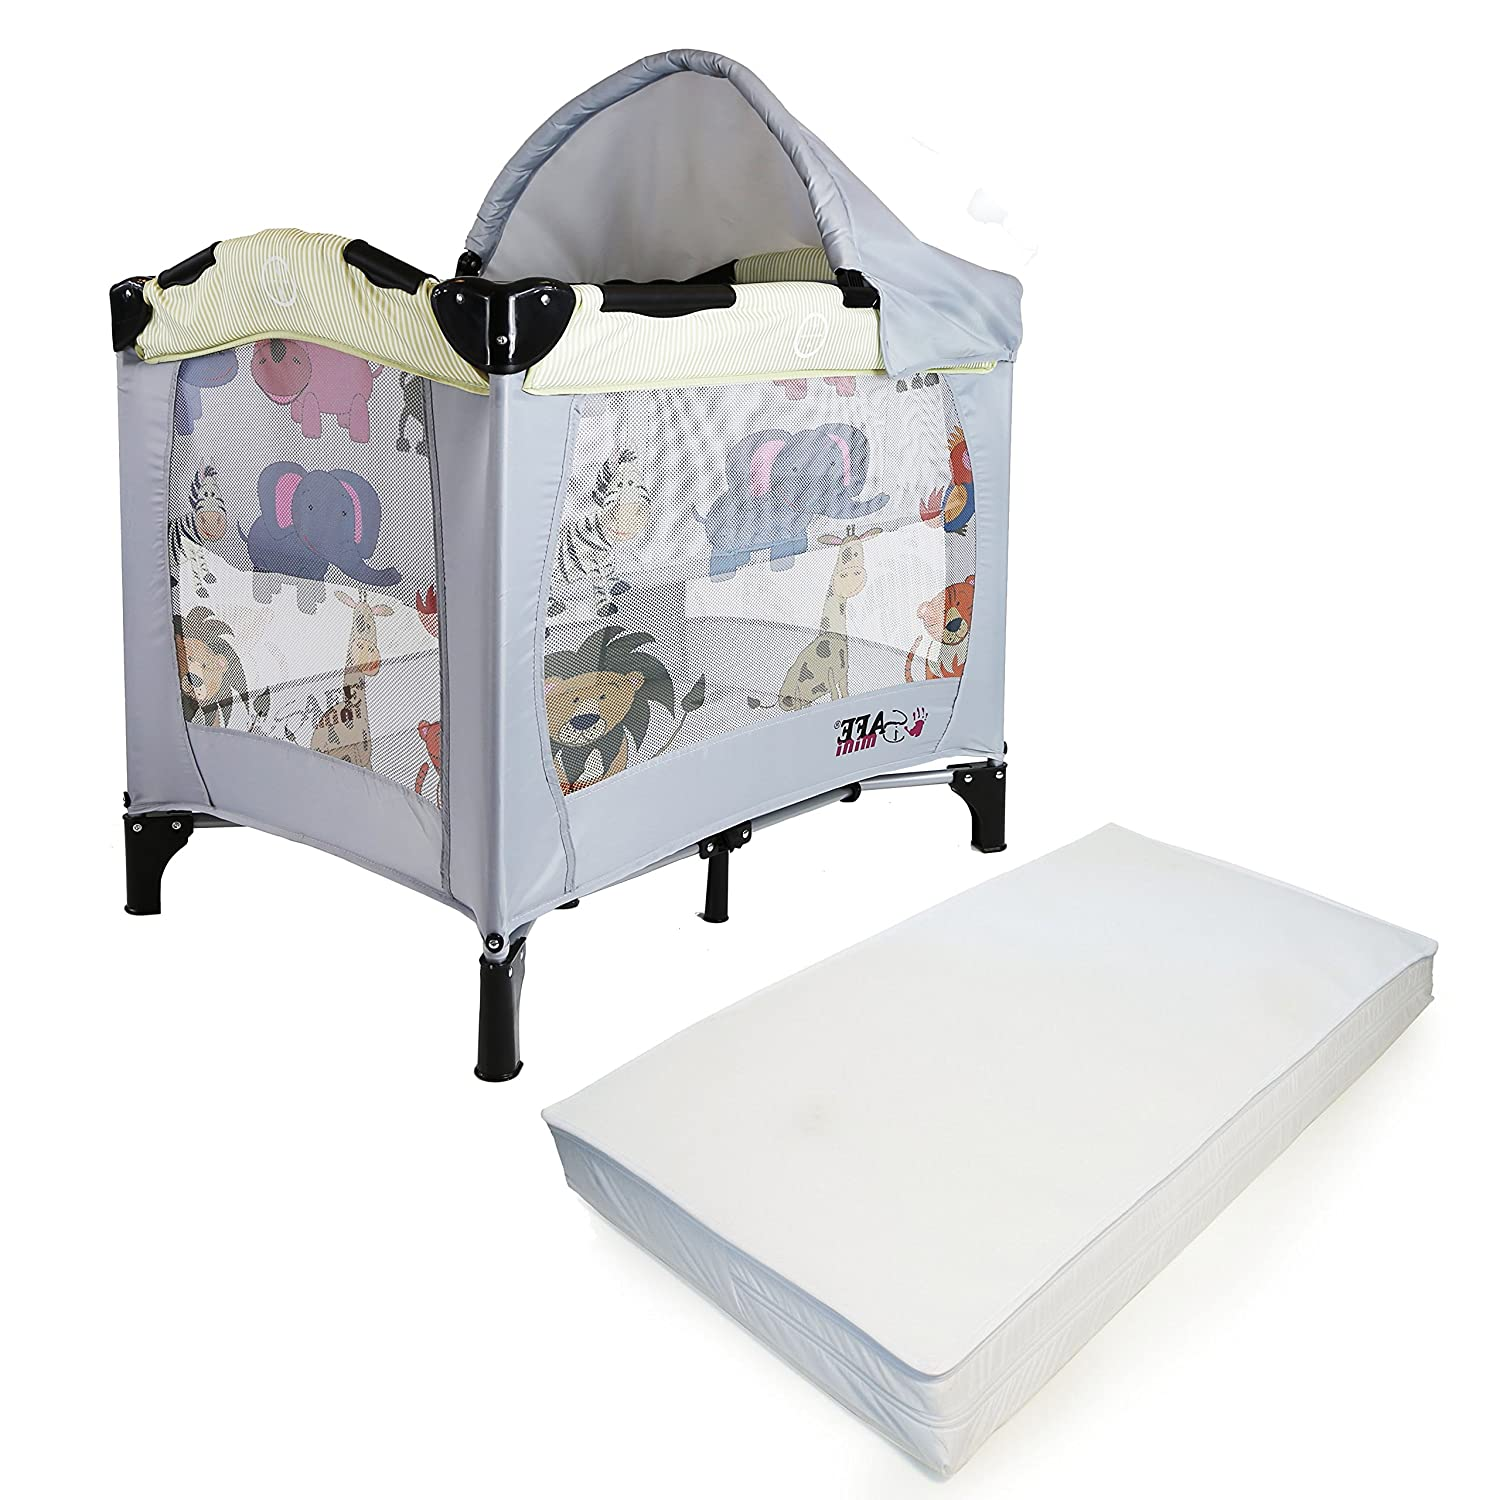 iSafe Mini Travel Cot With Bassinet And Canopy - Smiley And Cuddly 81 x 56 x 84 cm Complete With Mattress